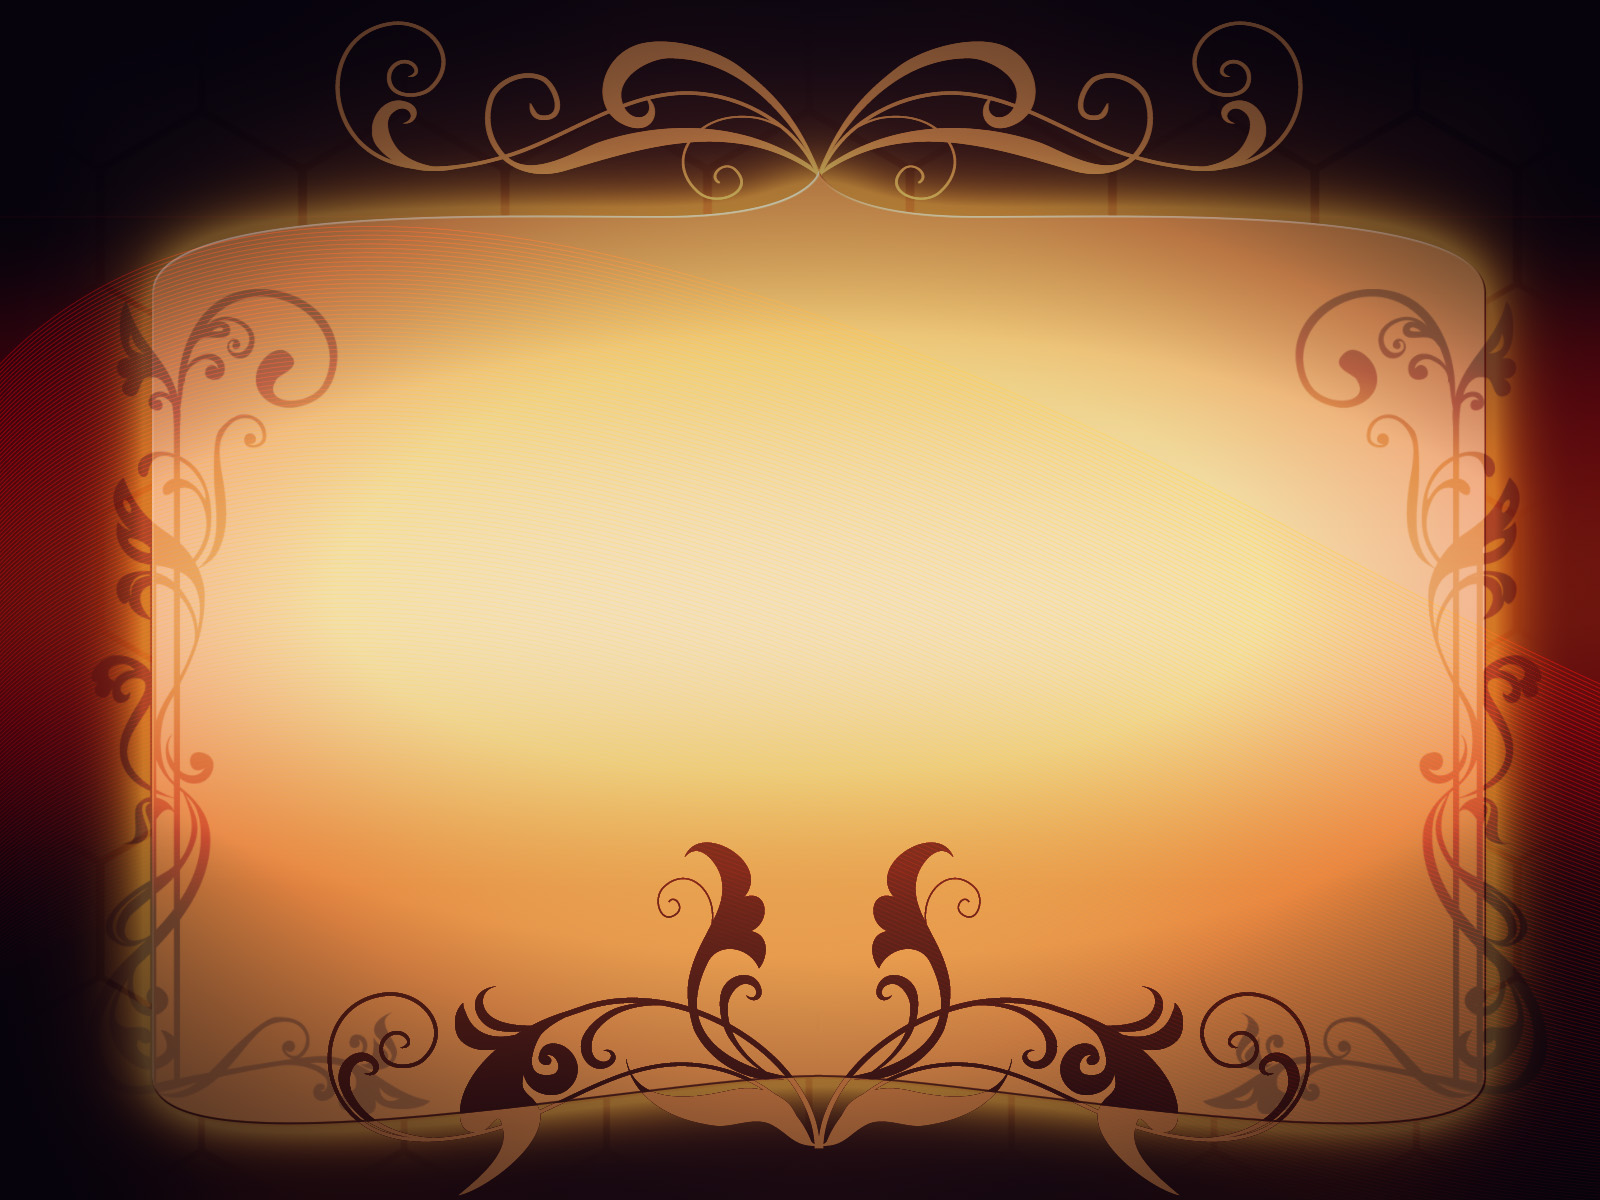 Golden Frame, Background Powerpoint 611.2 Kb